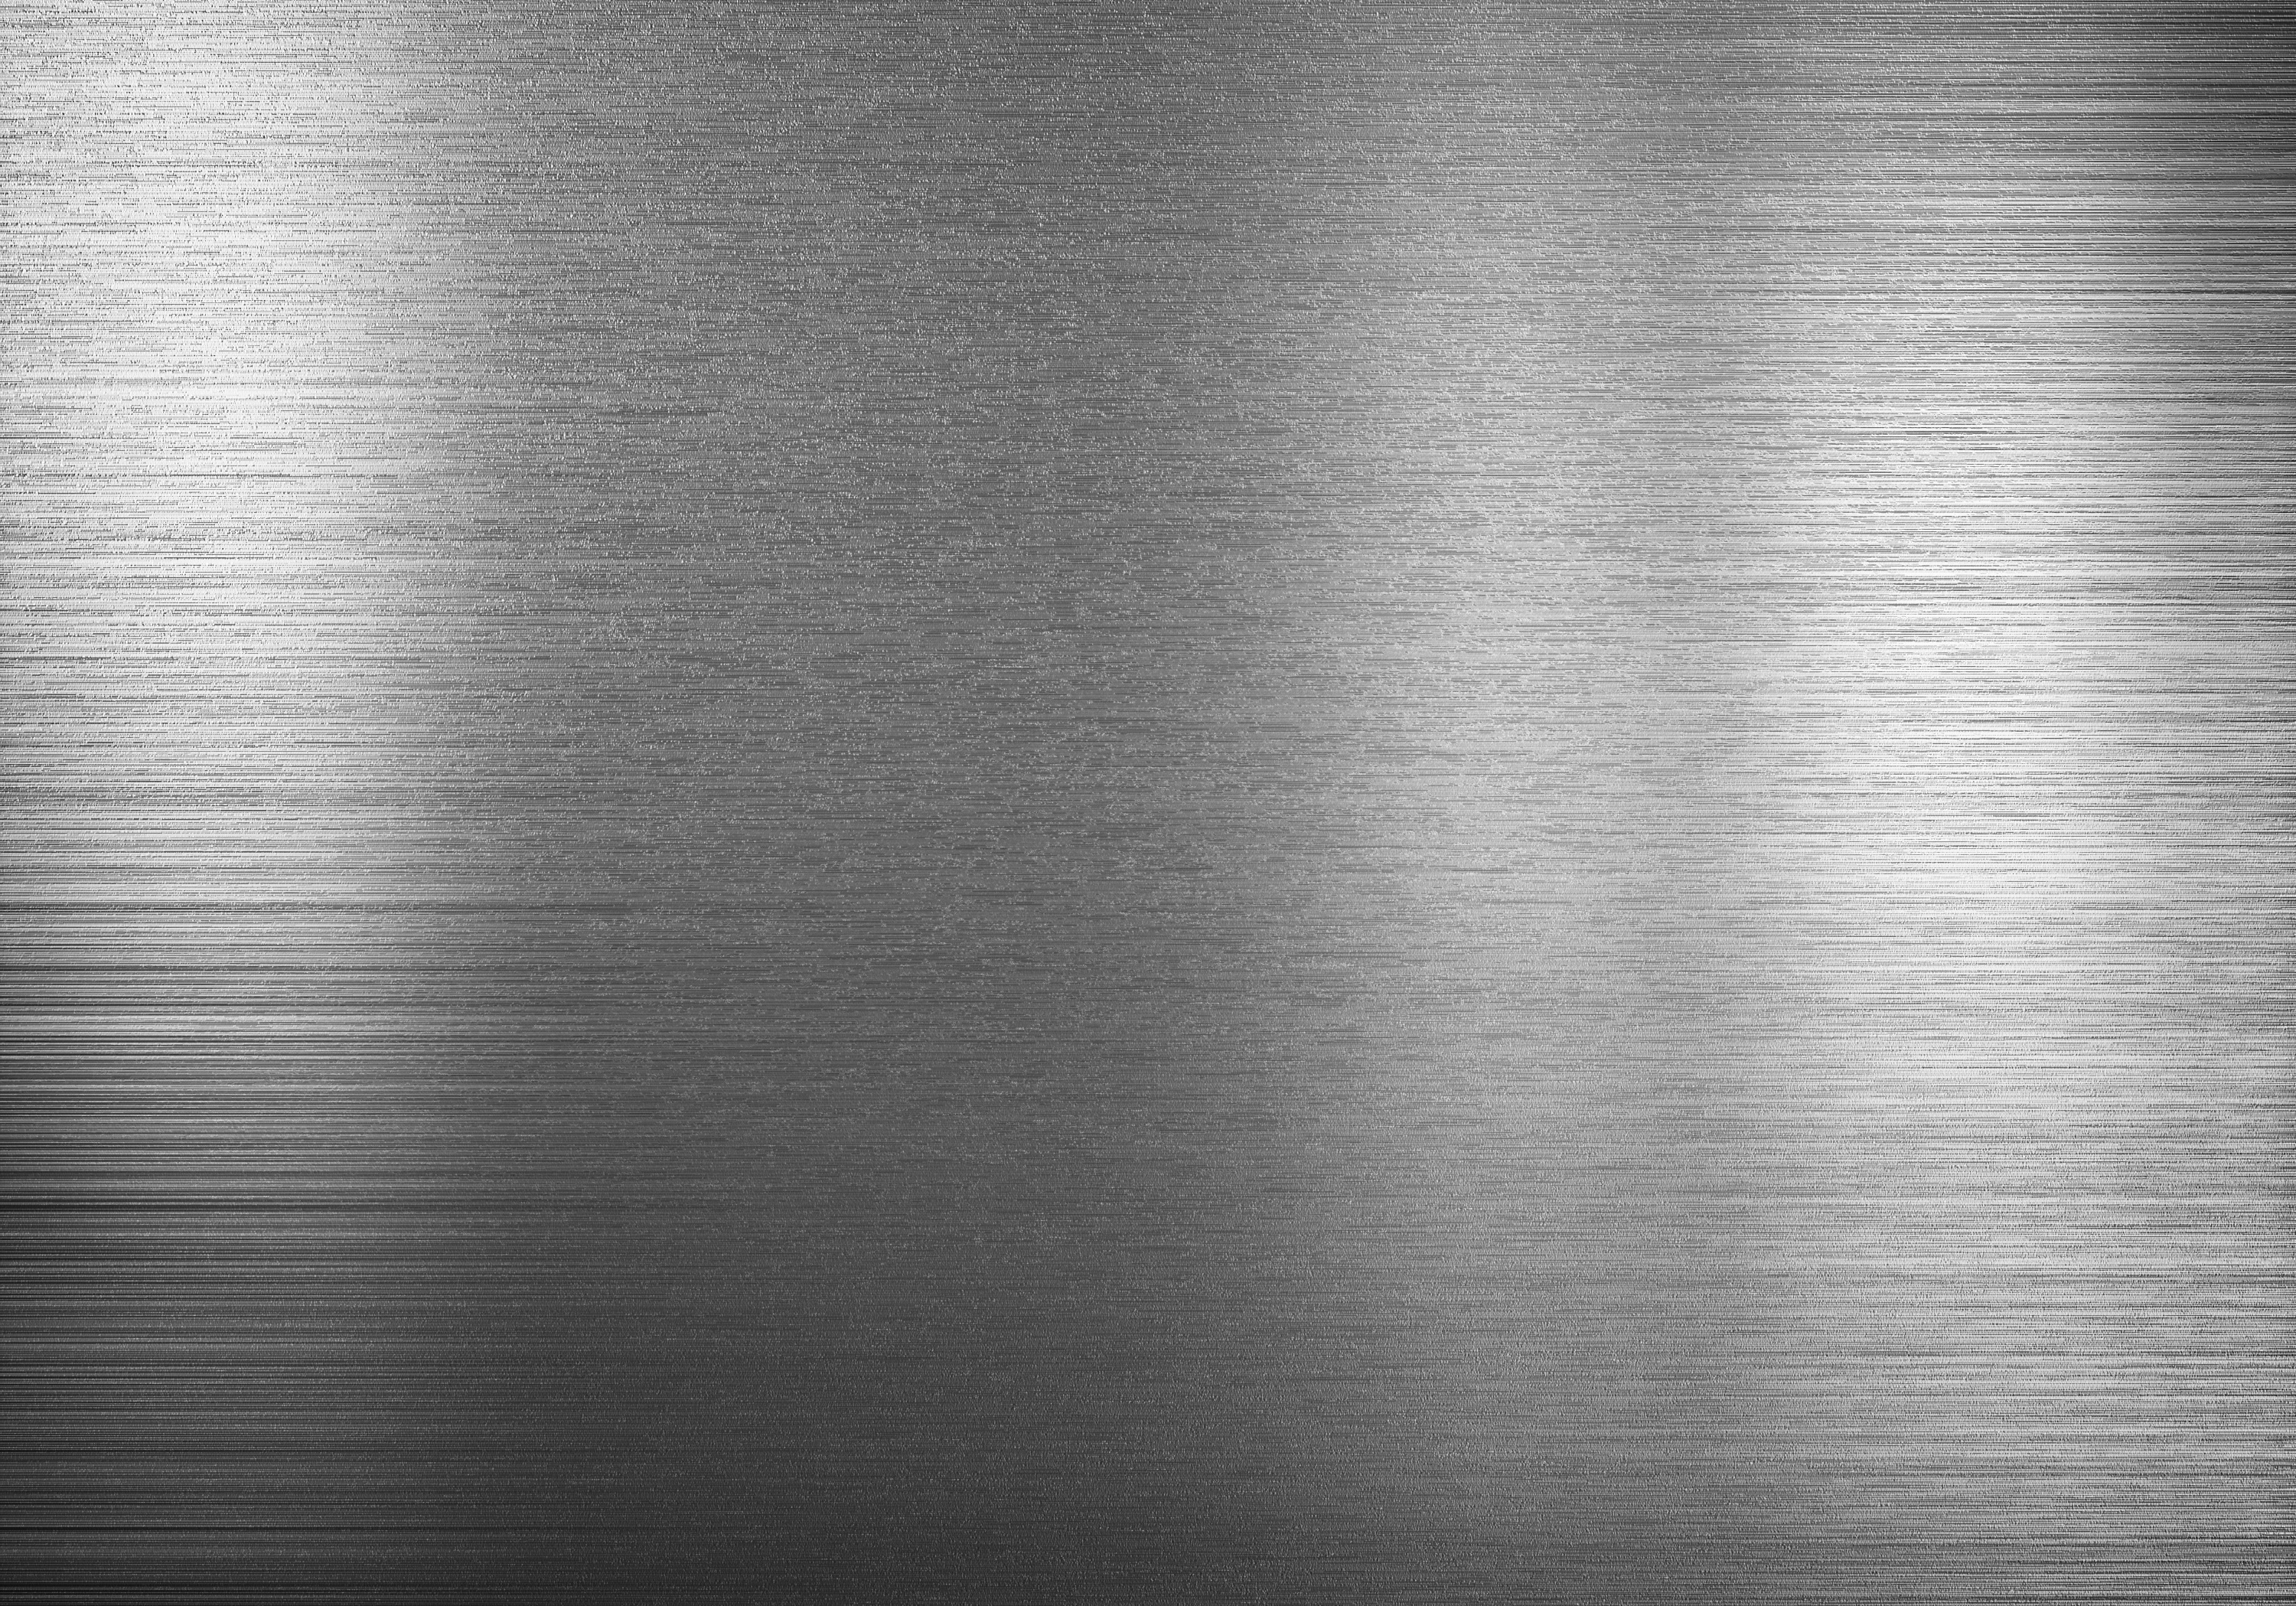 Metallic Texture Wallpaper Id 2945